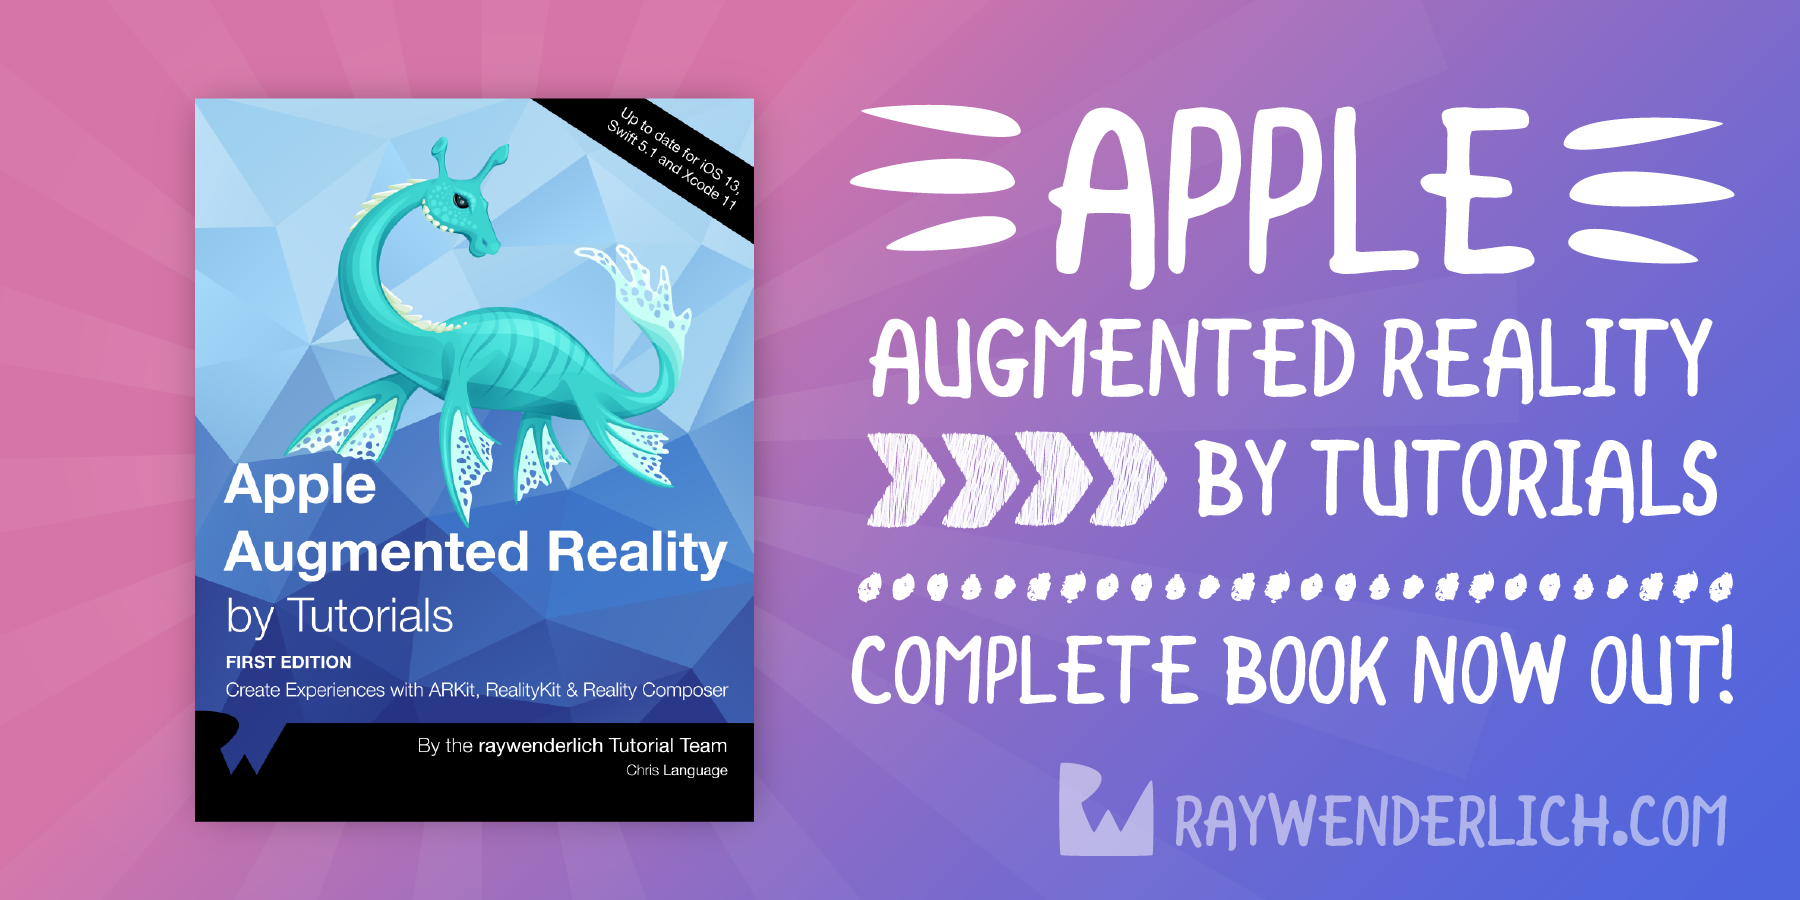 Apple Augmented Reality by Tutorials: Complete Book Now Available! [FREE]